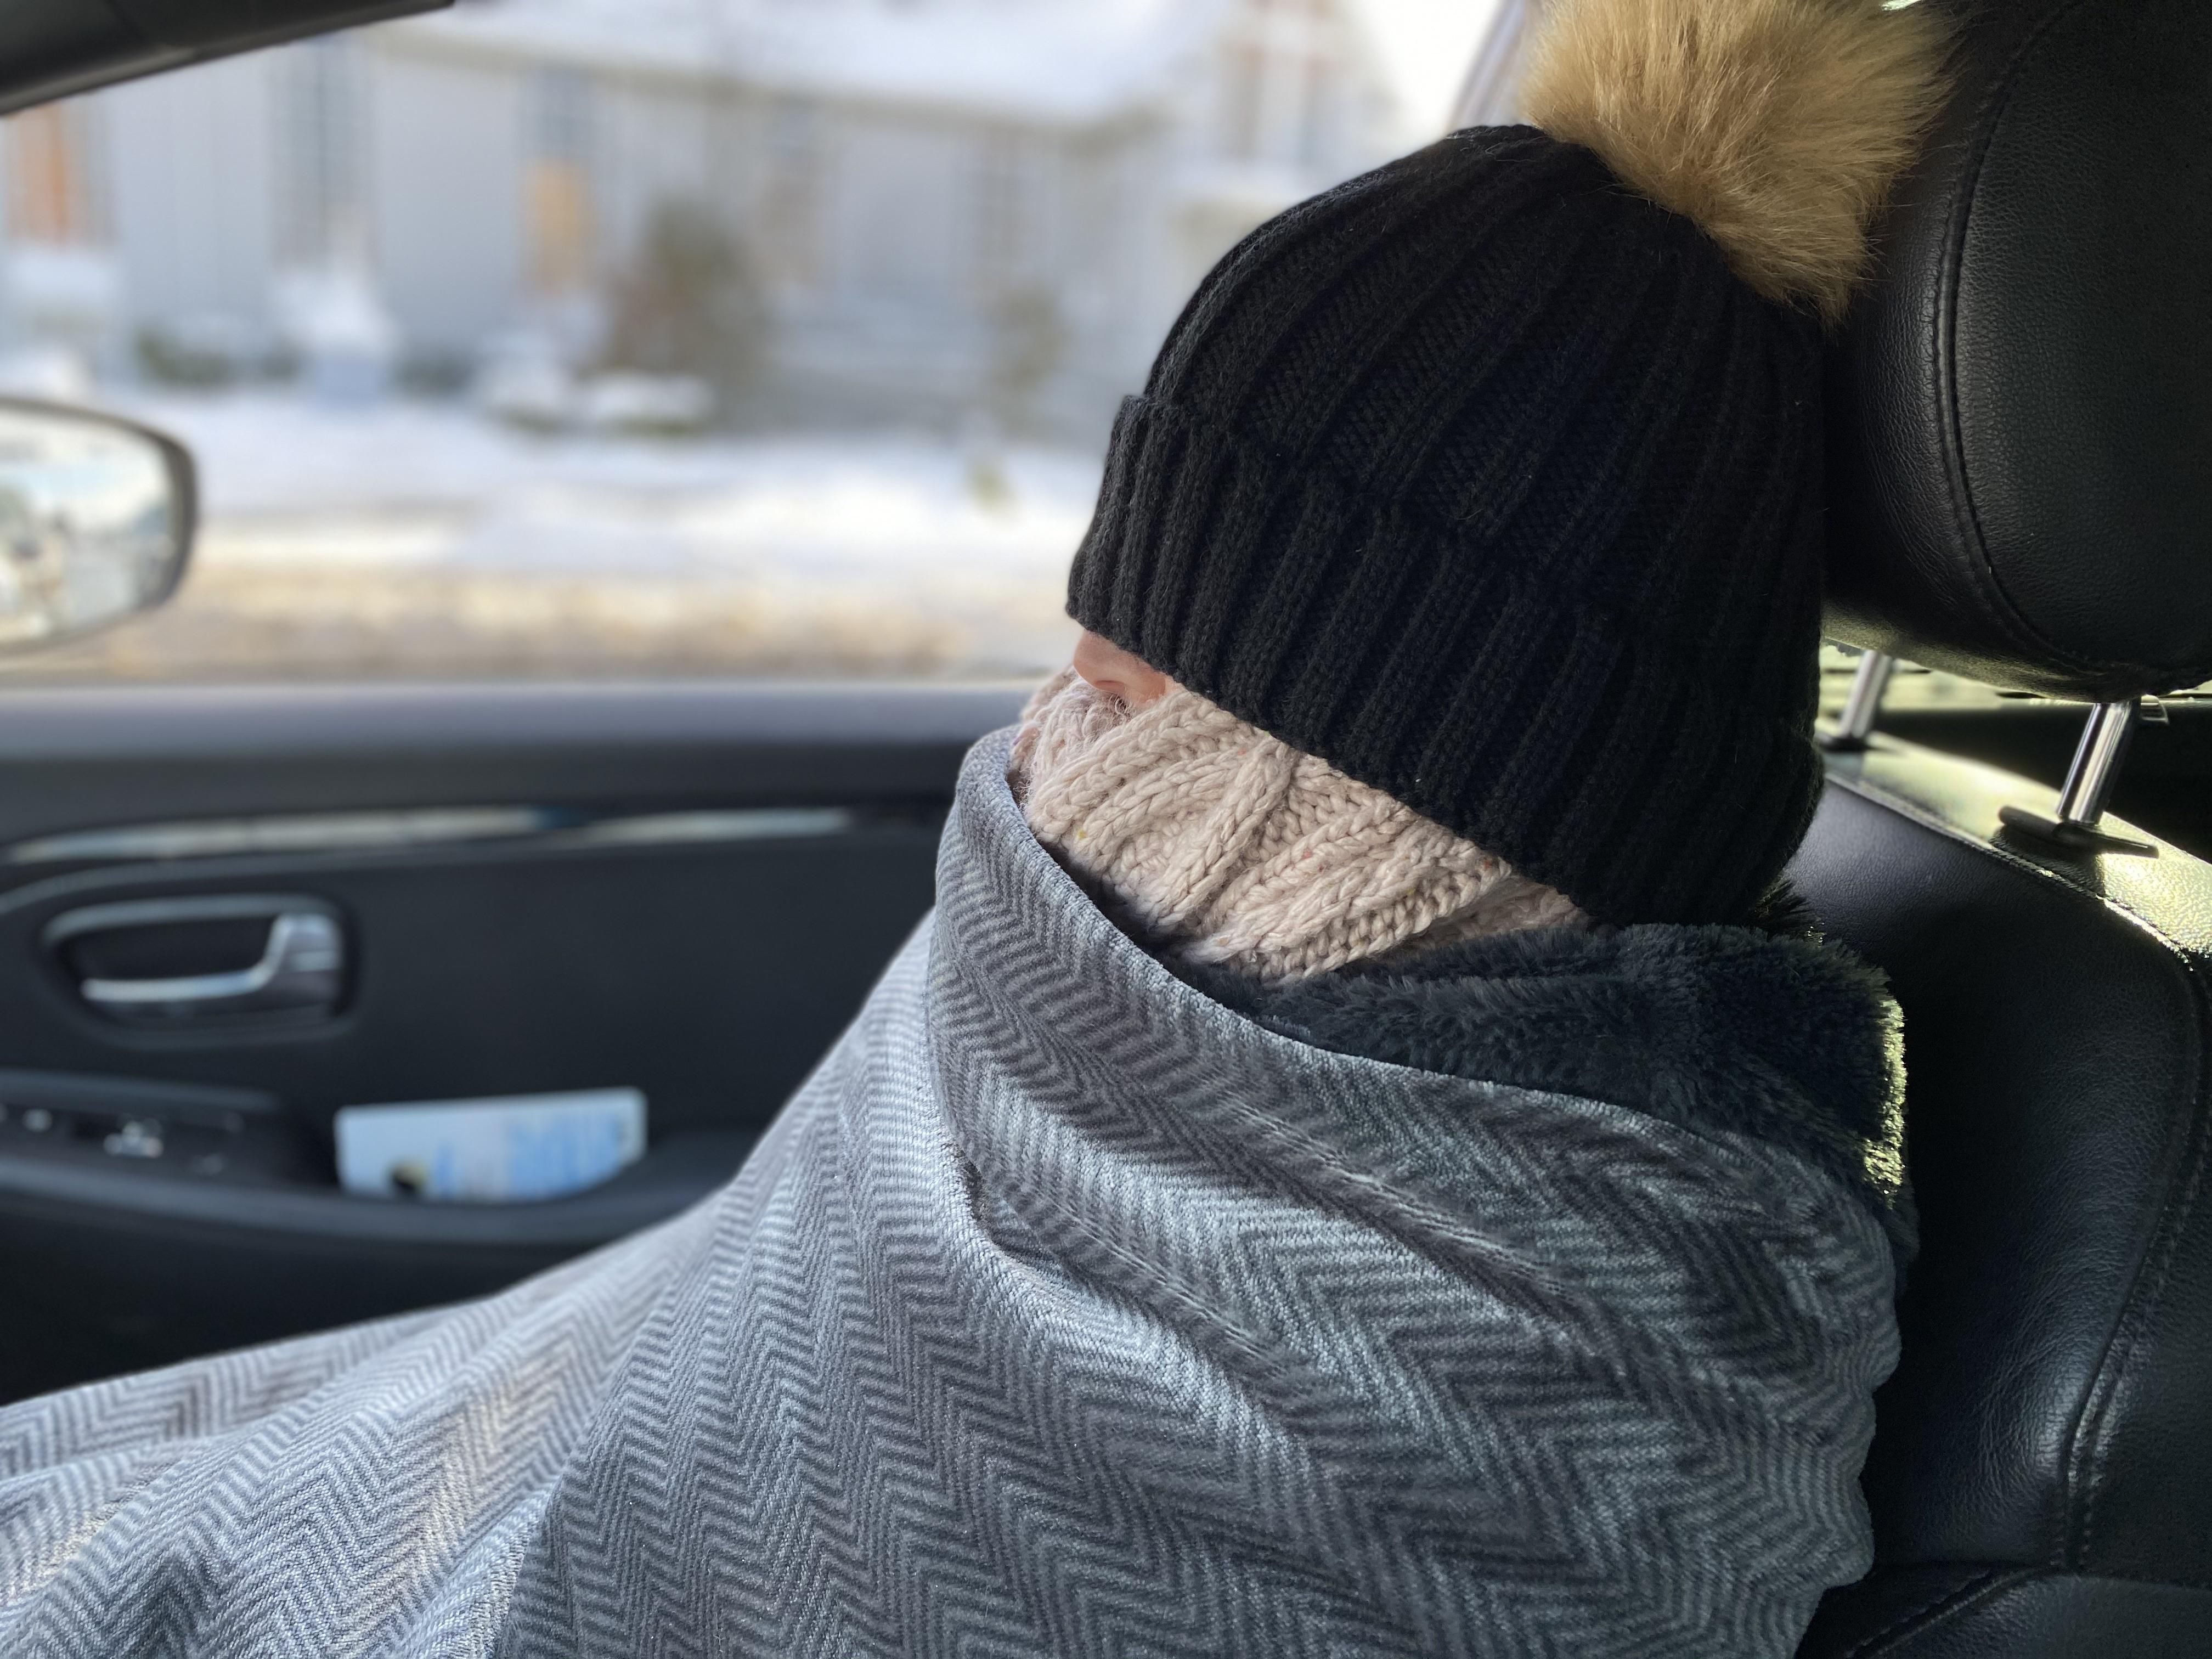 It's cold, my car window broke while open and my wife is stubborn.